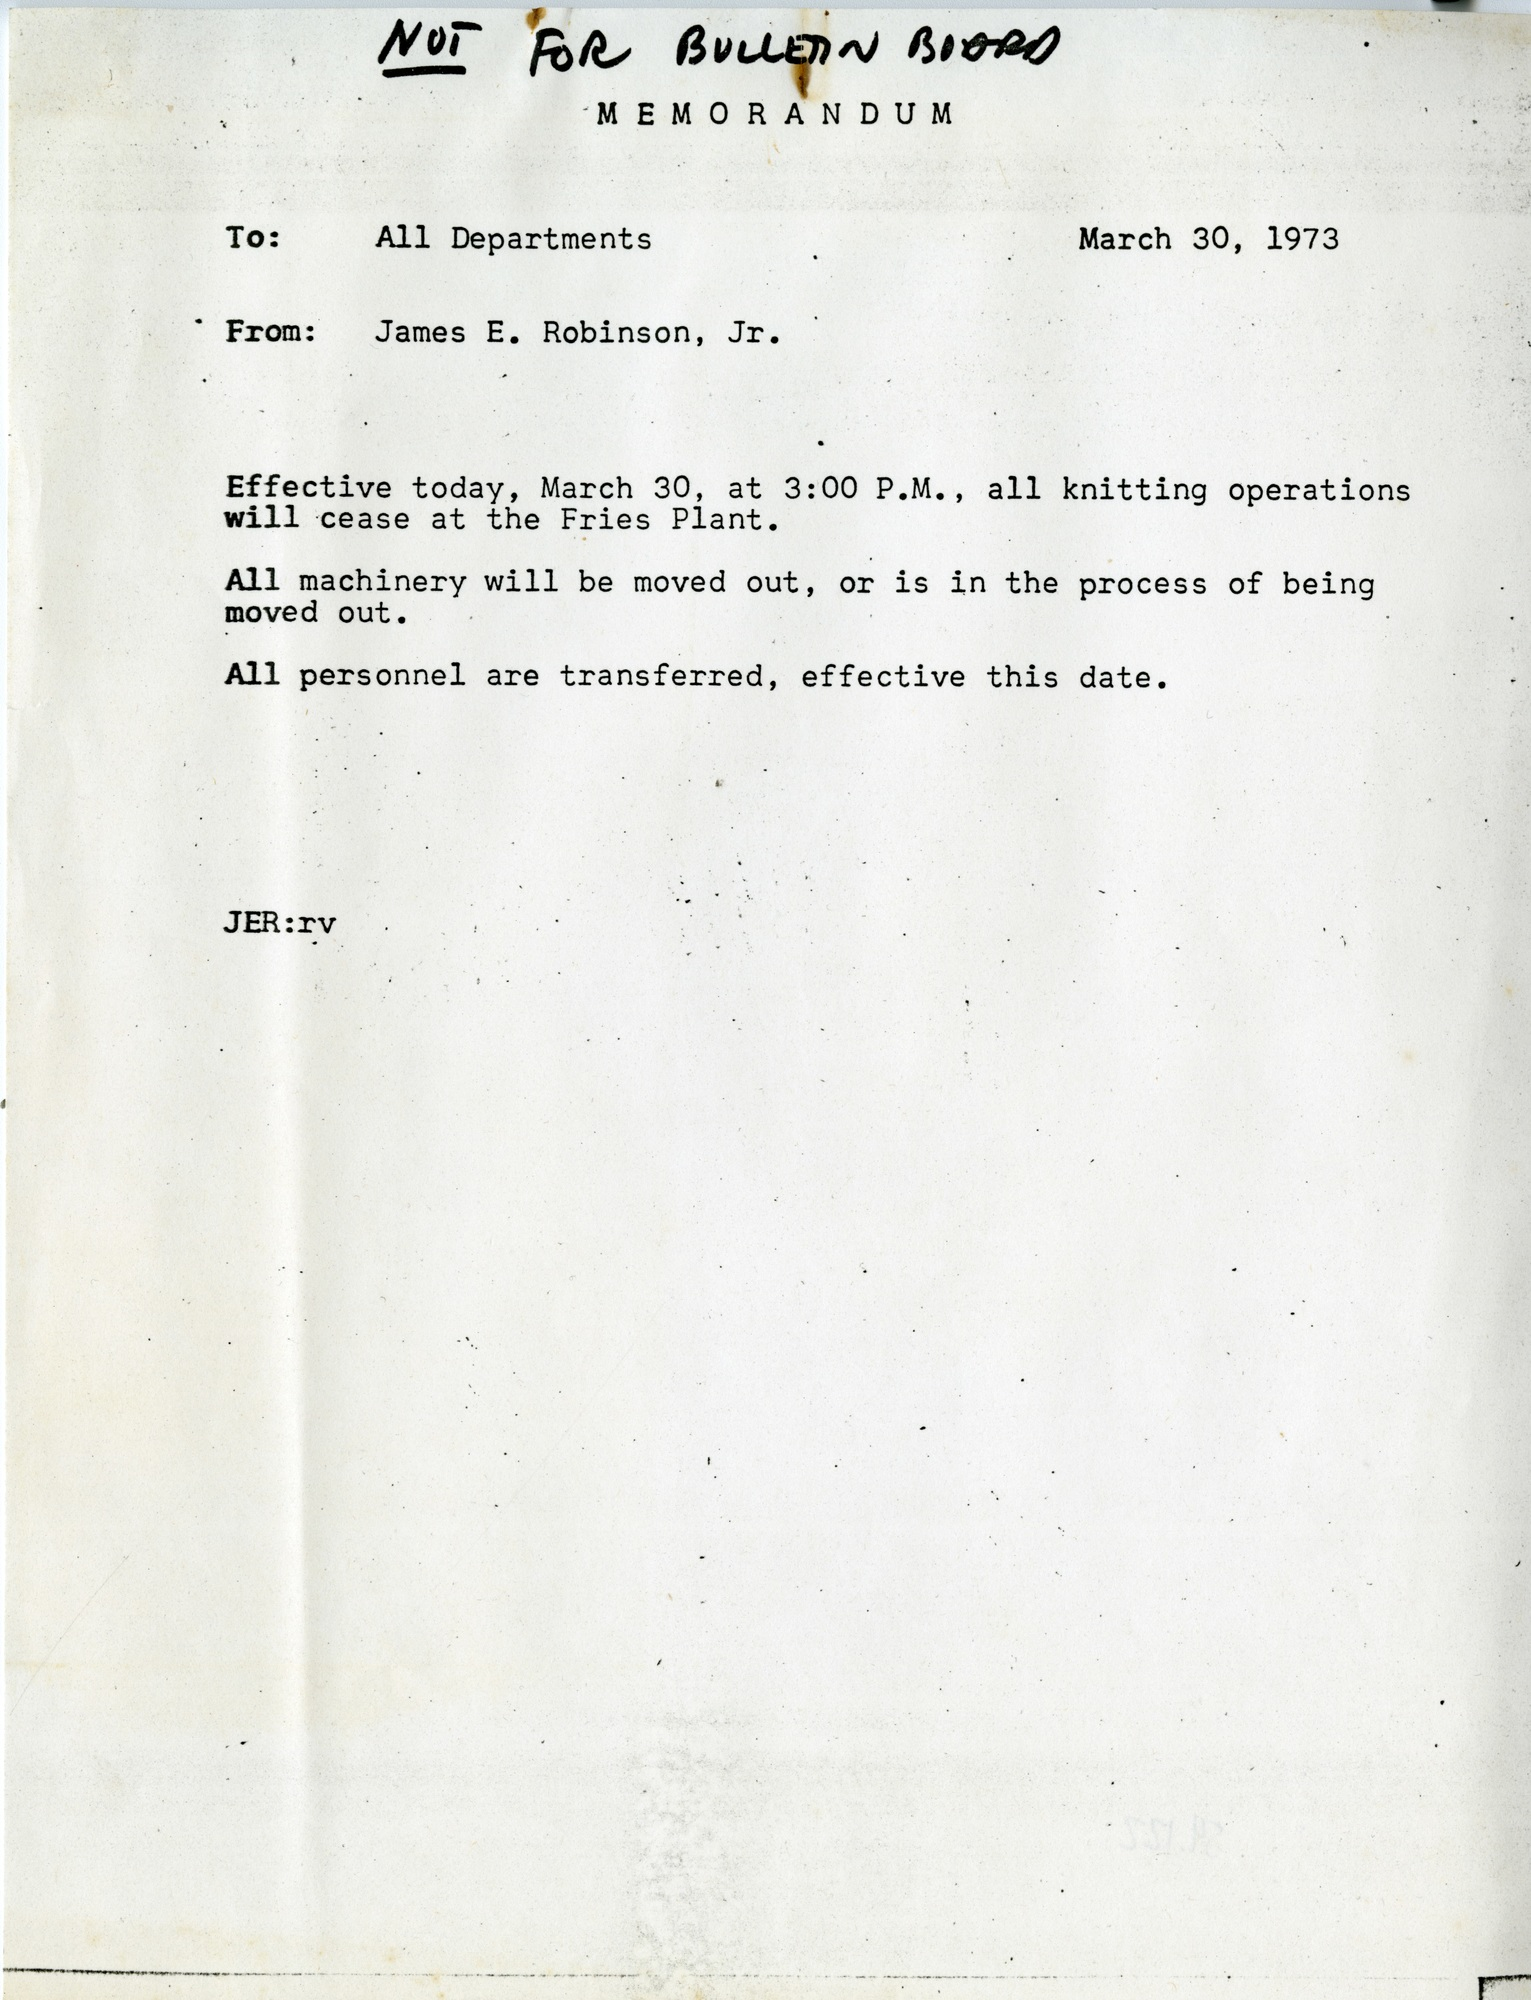 Memo to Cease Knitting Operations at the Mill, 1973 (Ms1989-039)